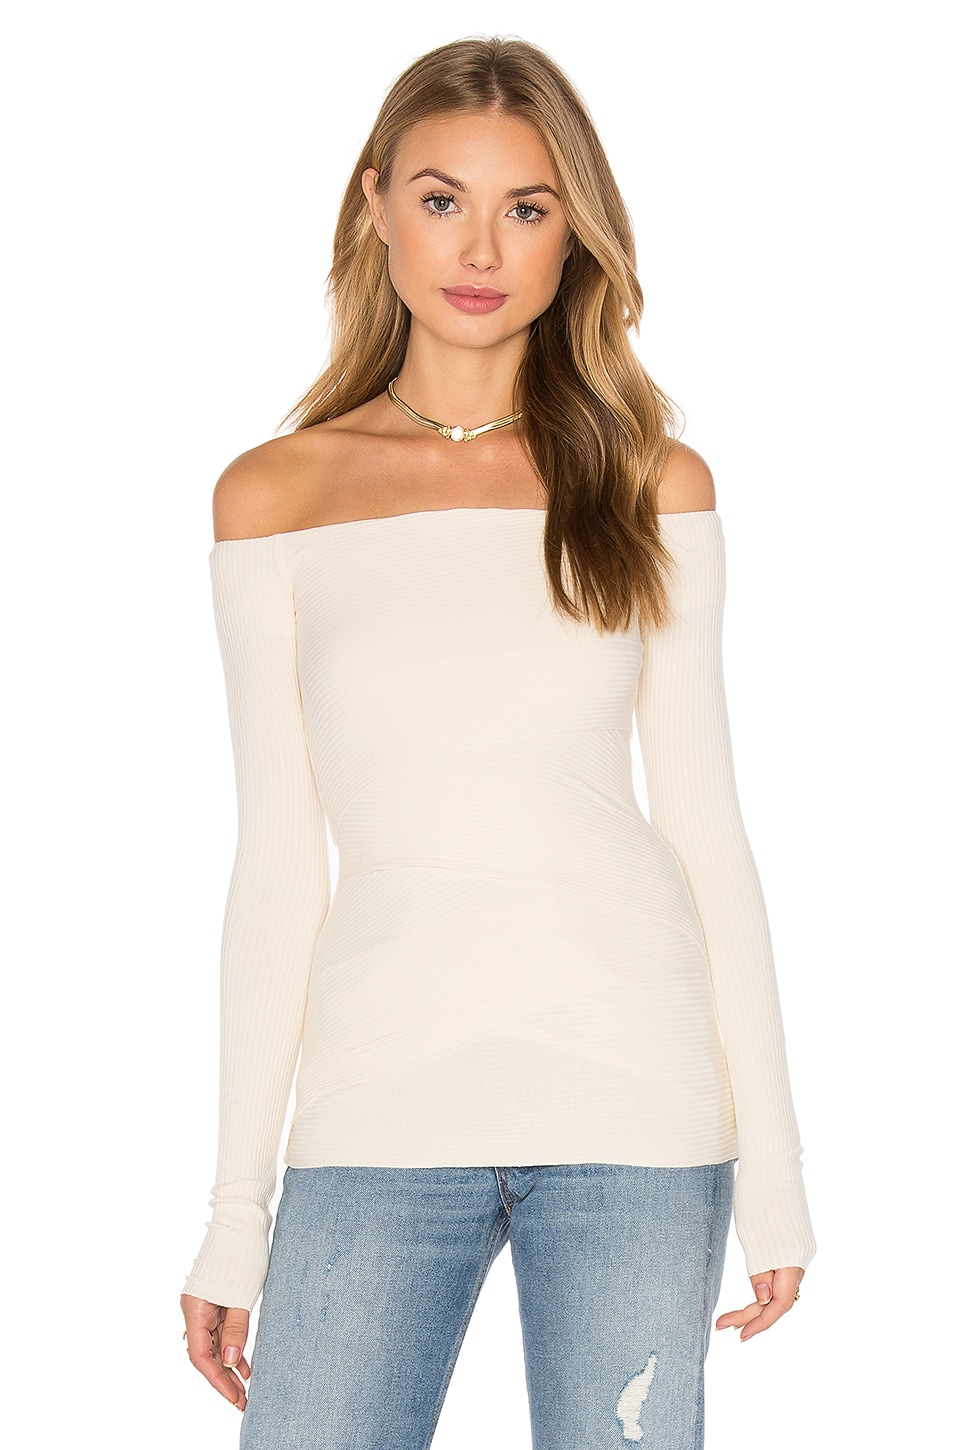 Bailey 44 Love Top in Vanilla